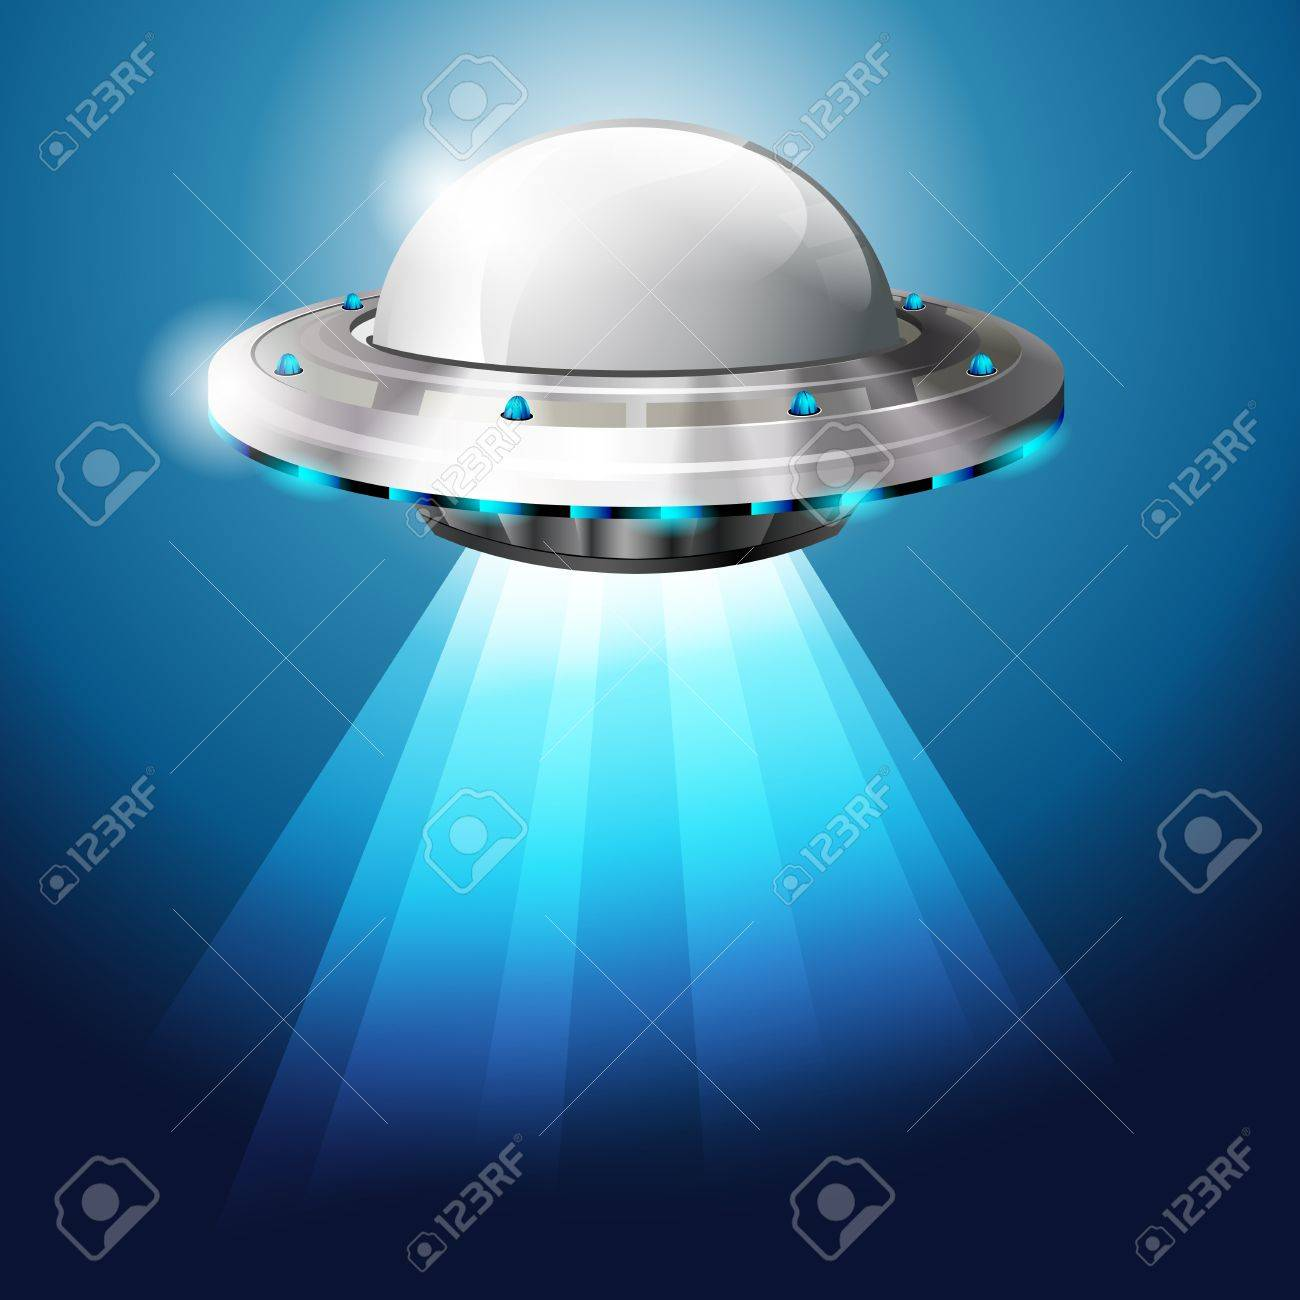 Unidentified flying object - UFO - vector file Stock Vector - 14322990